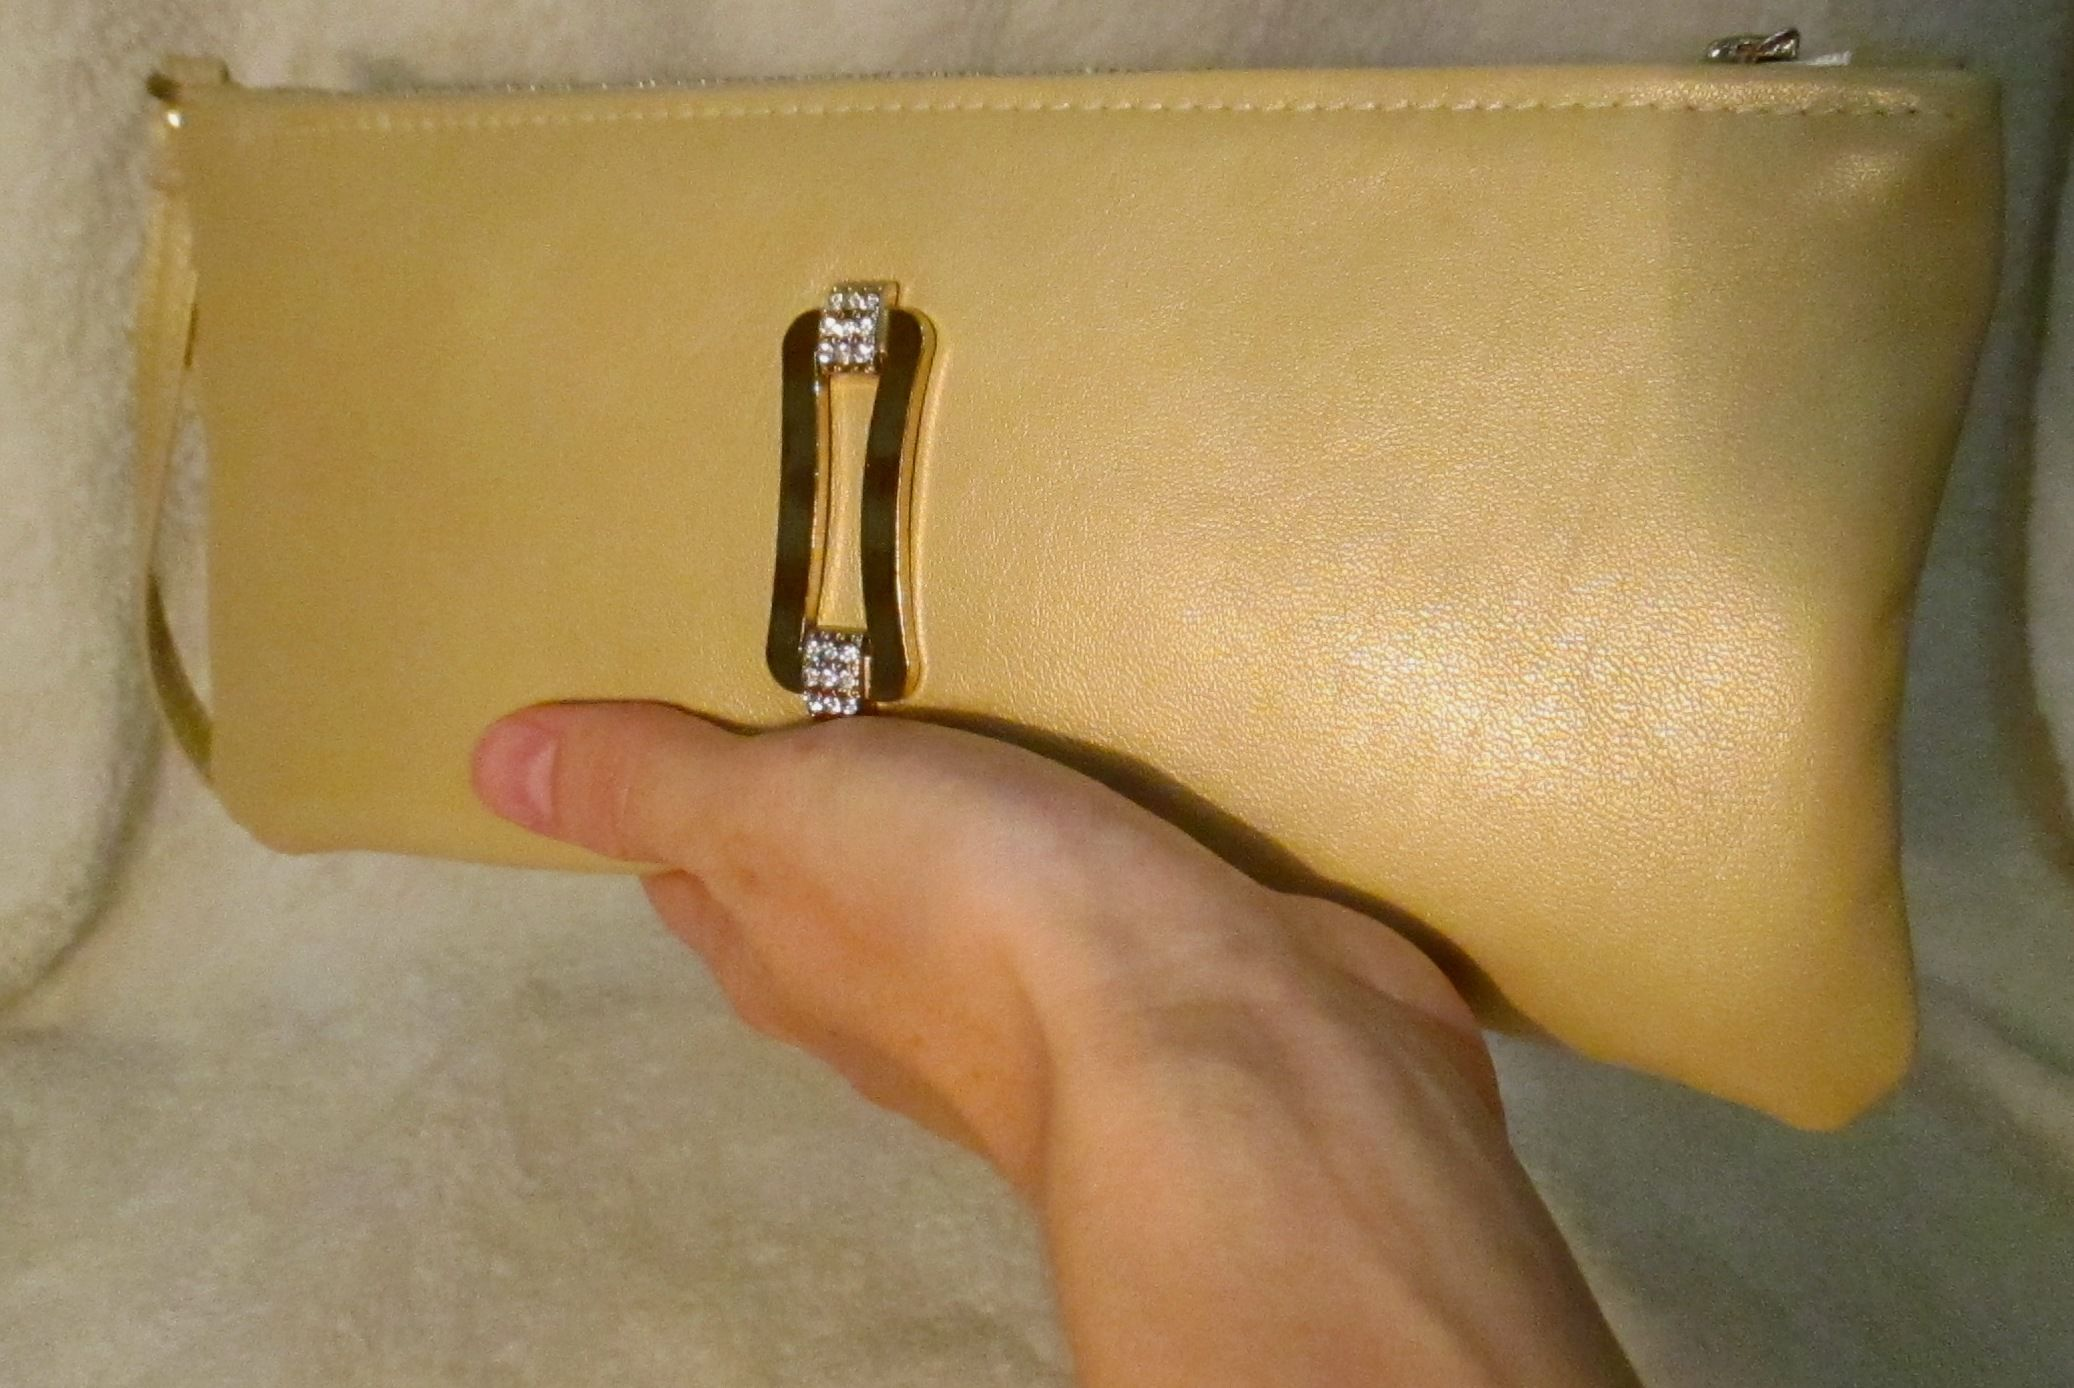 leather accessories bag yellow golden clutch